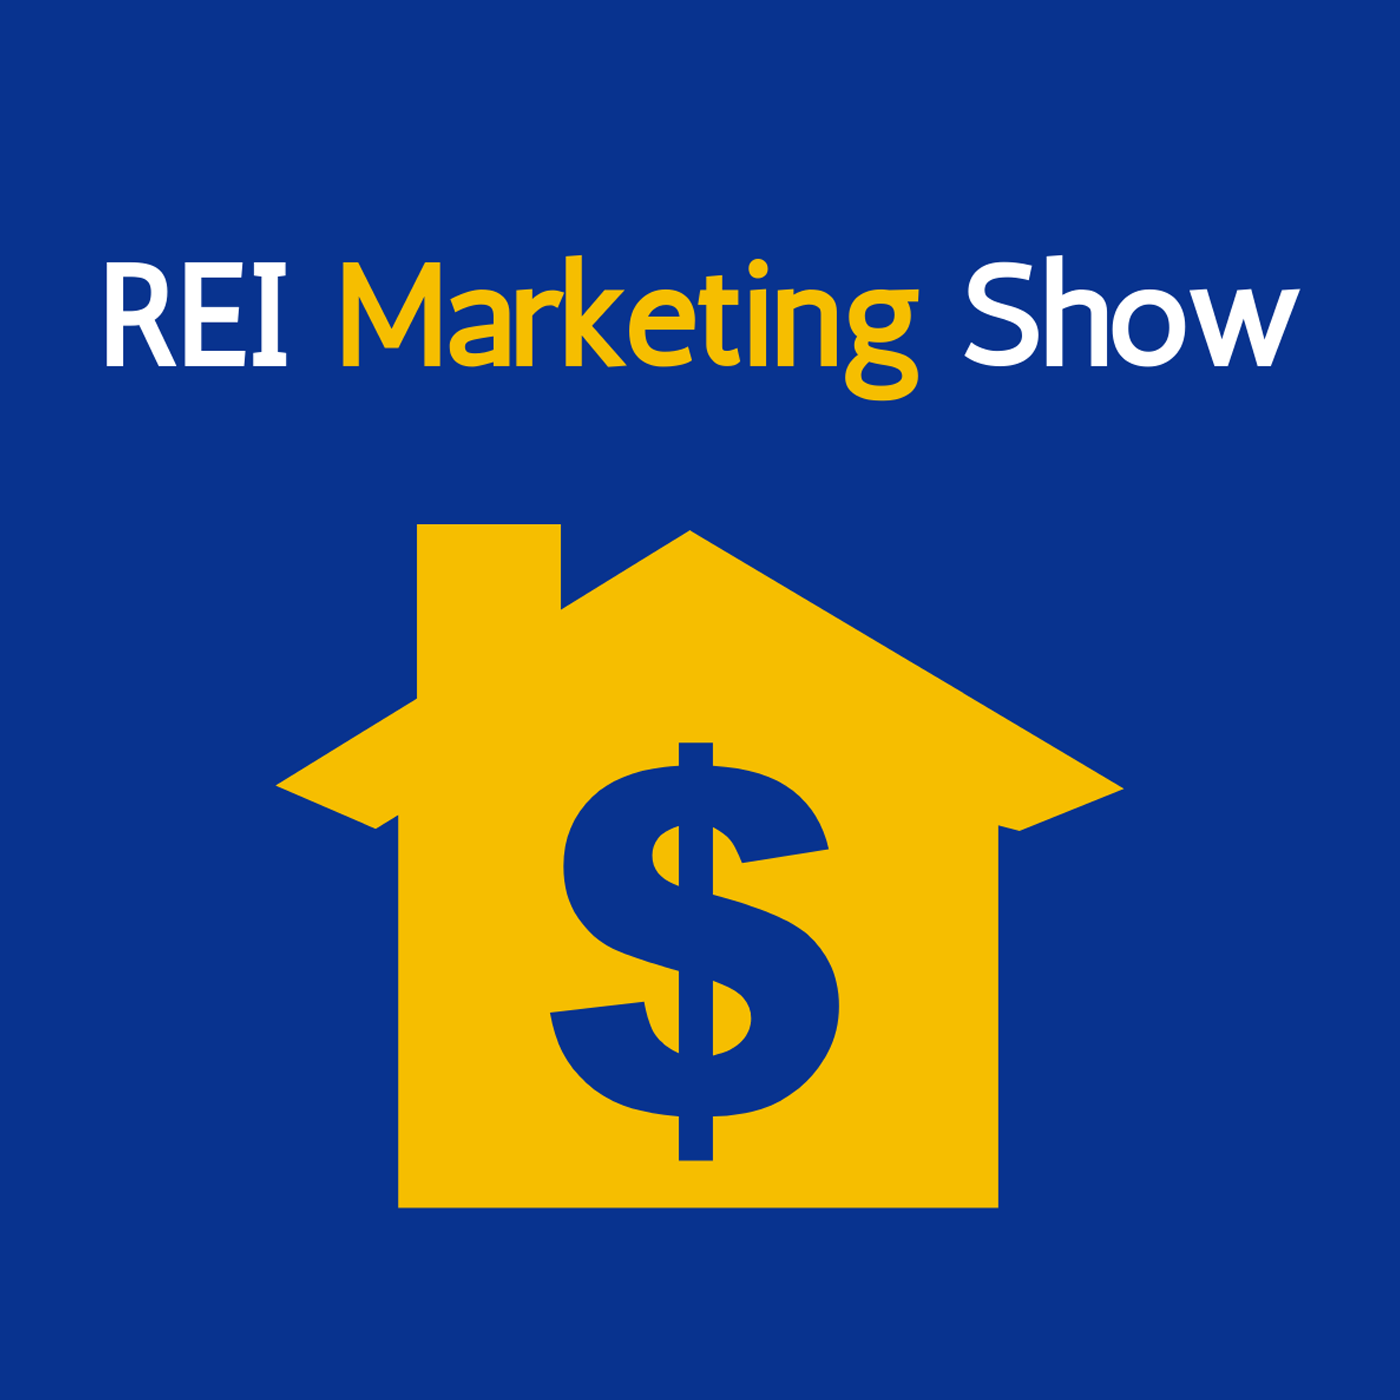 REI Marketing Show